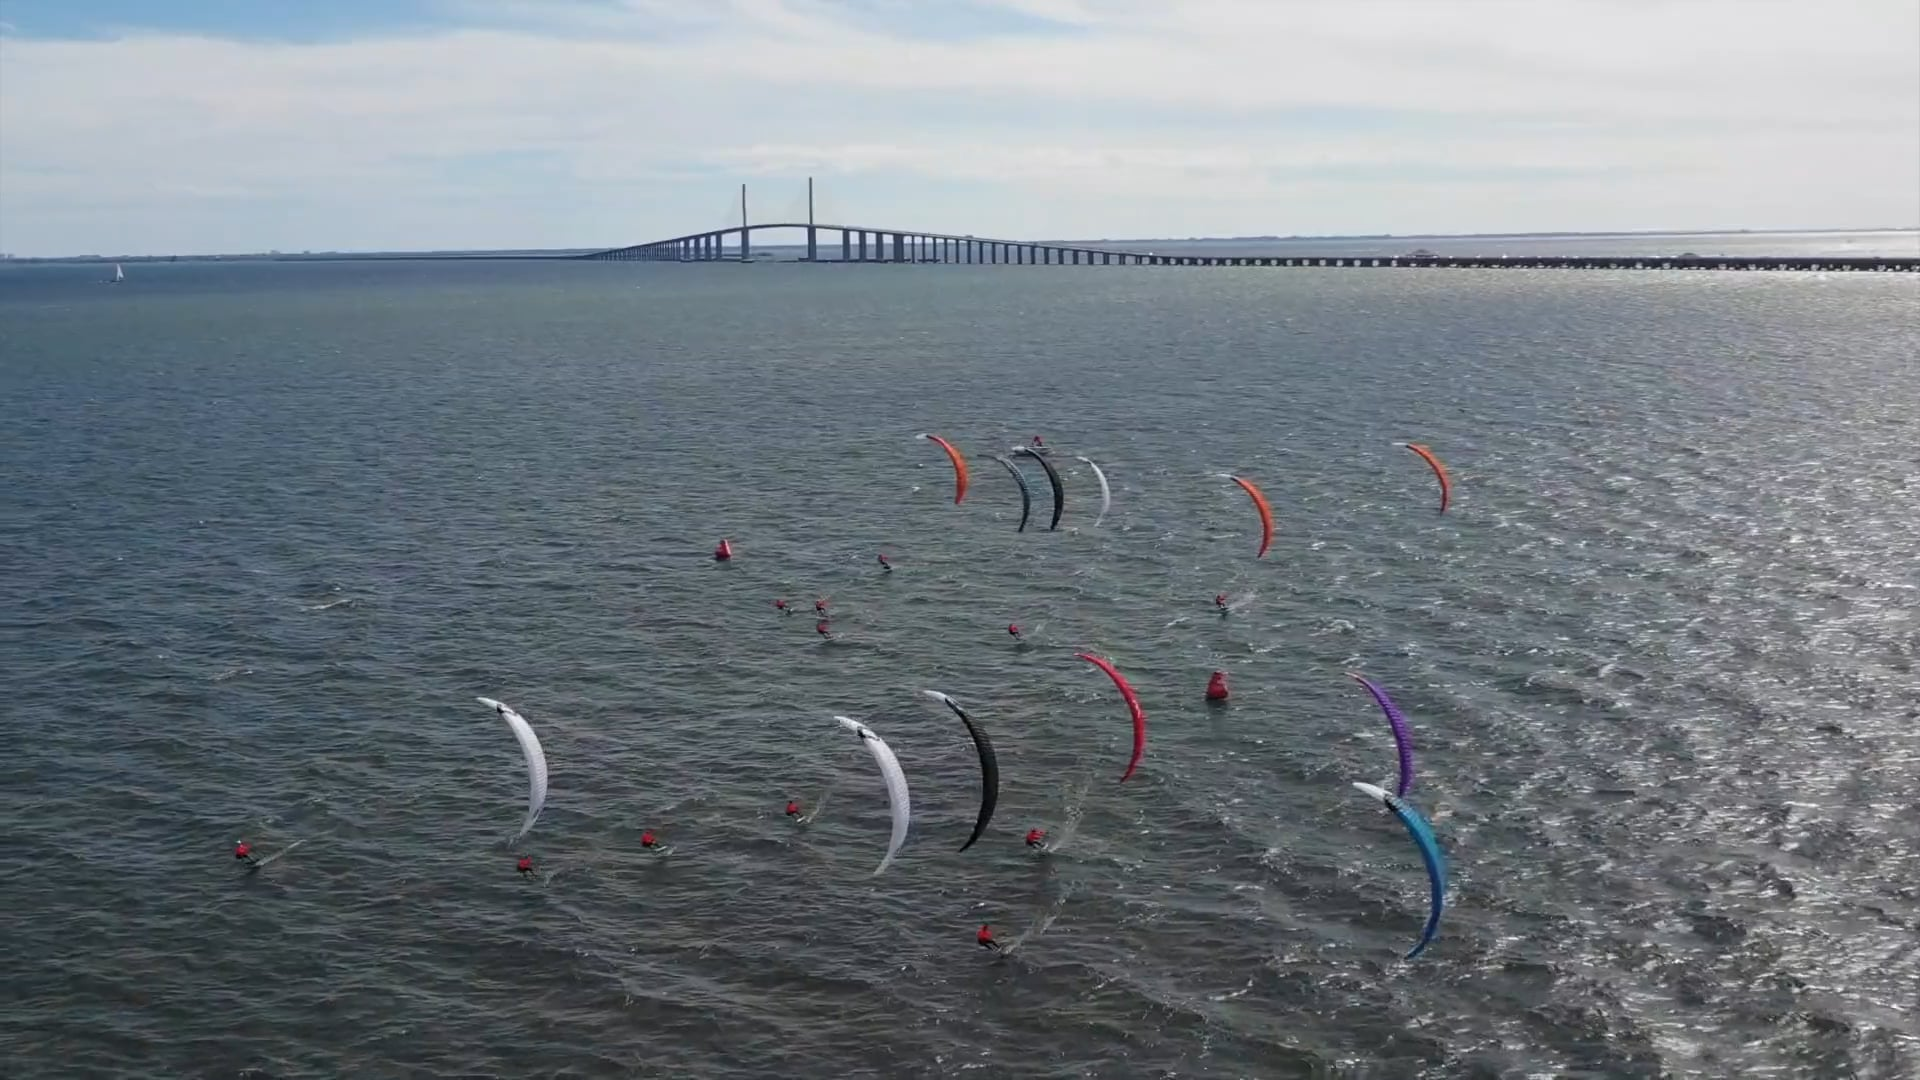 ELITE Hydrofoil kiteboarding competition - with Epic Kites Kiteboarding